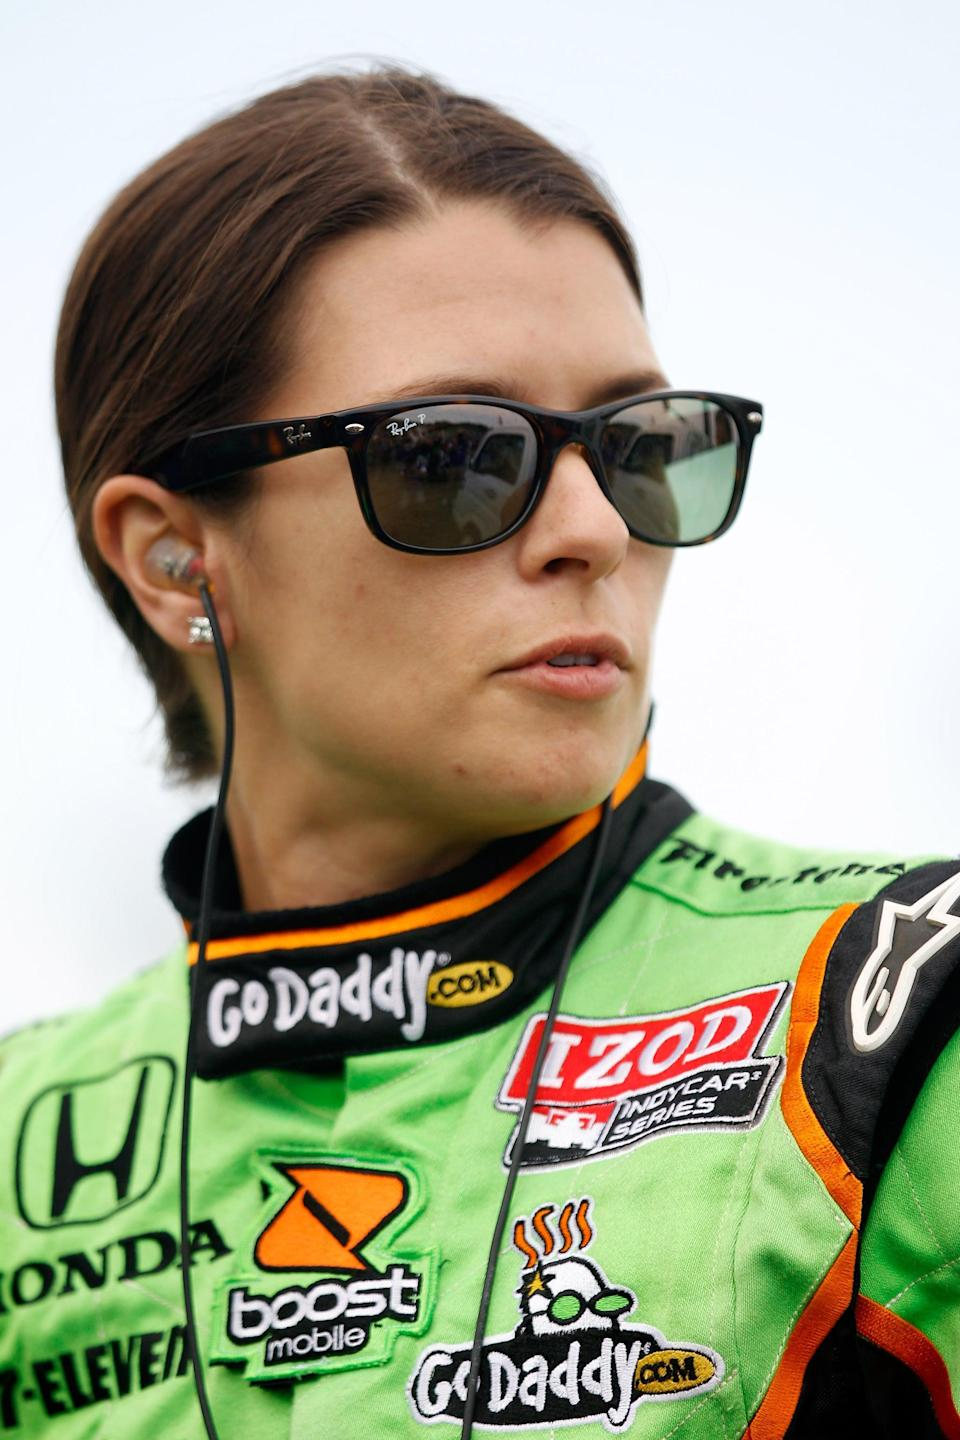 <p>Look back at almost any photo of Danica Patrick competing, and you'll find her in her Ray-Bans. Here she was in the classic sunglasses waiting to qualify for the IndyCar Series. She'd then go on to become the first and only woman to win an IndyCar series race during the Indy Japan 300.</p>